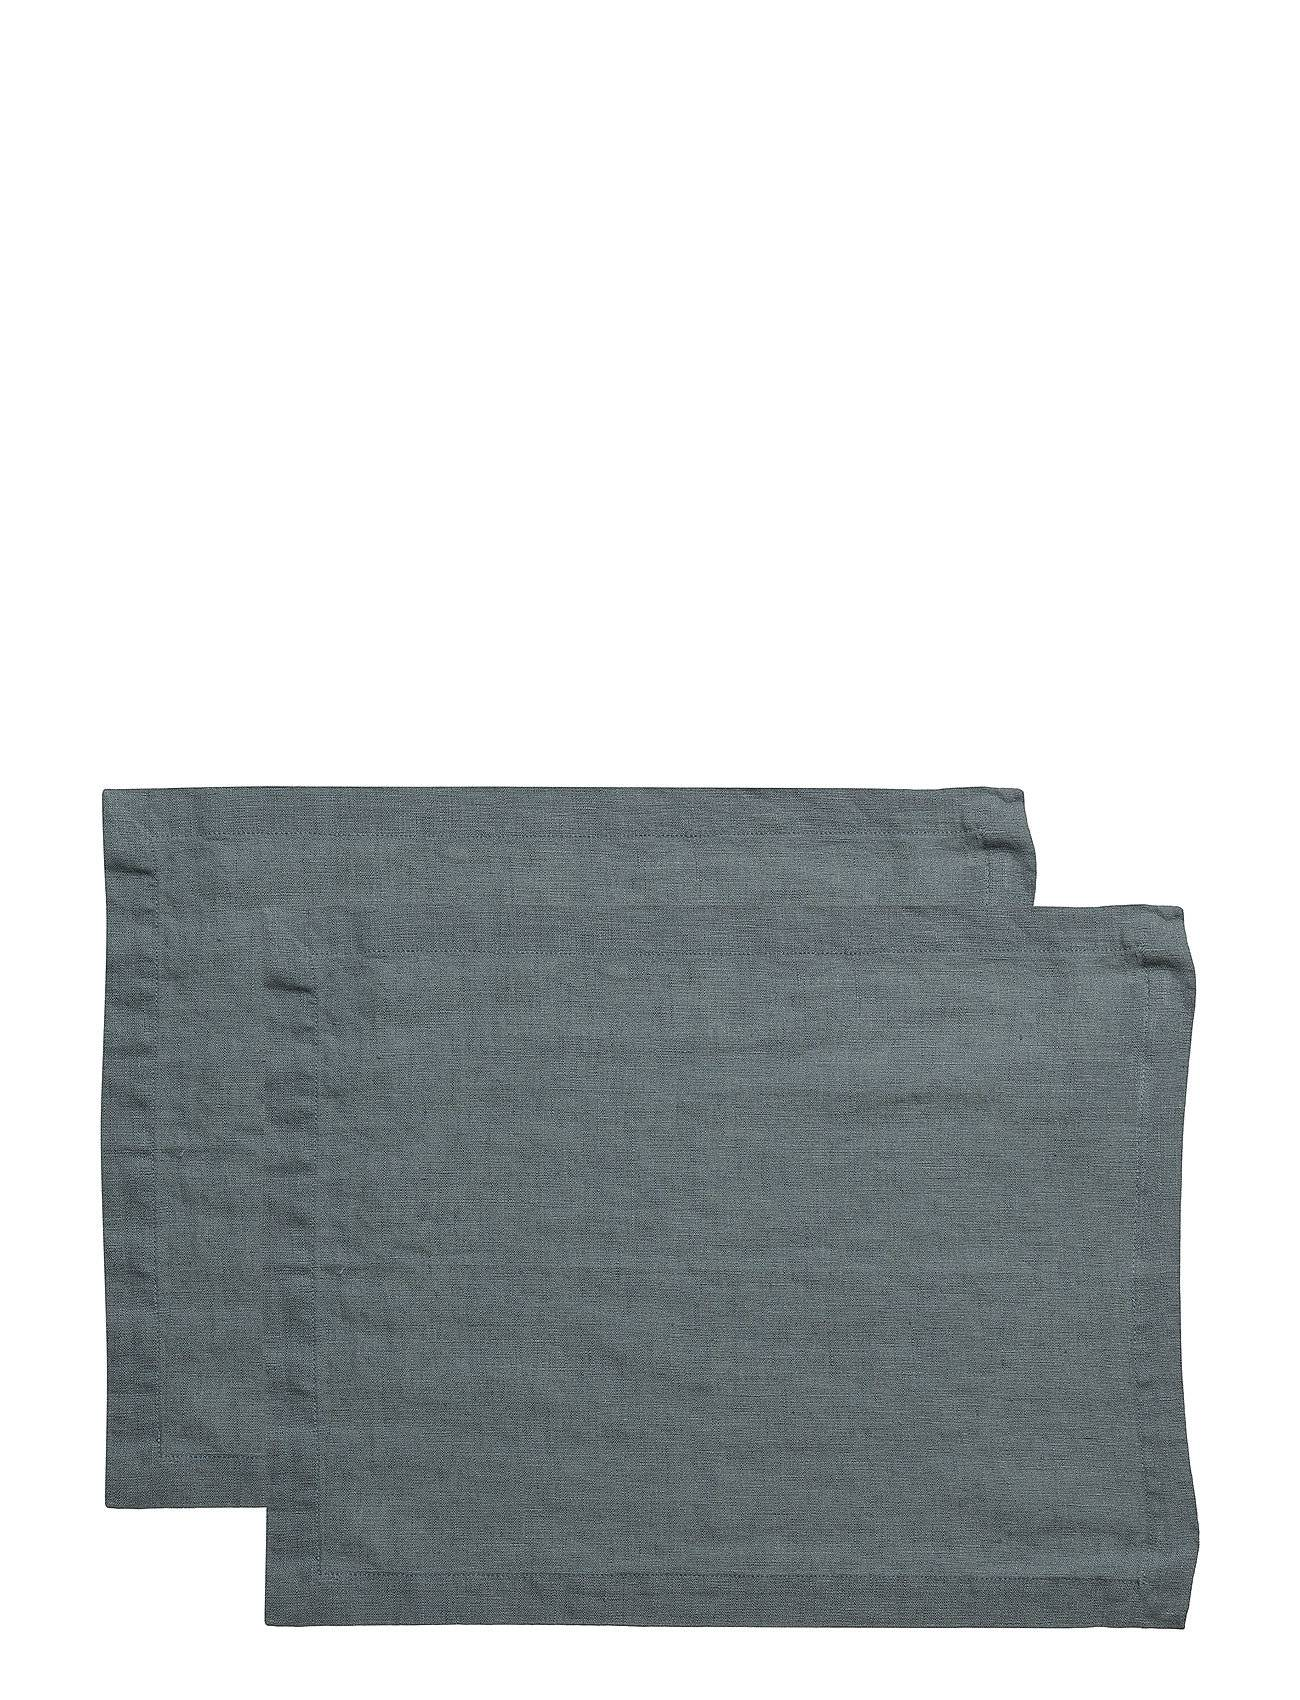 Gripsholm Placemat Washed Linnen 2-Pack